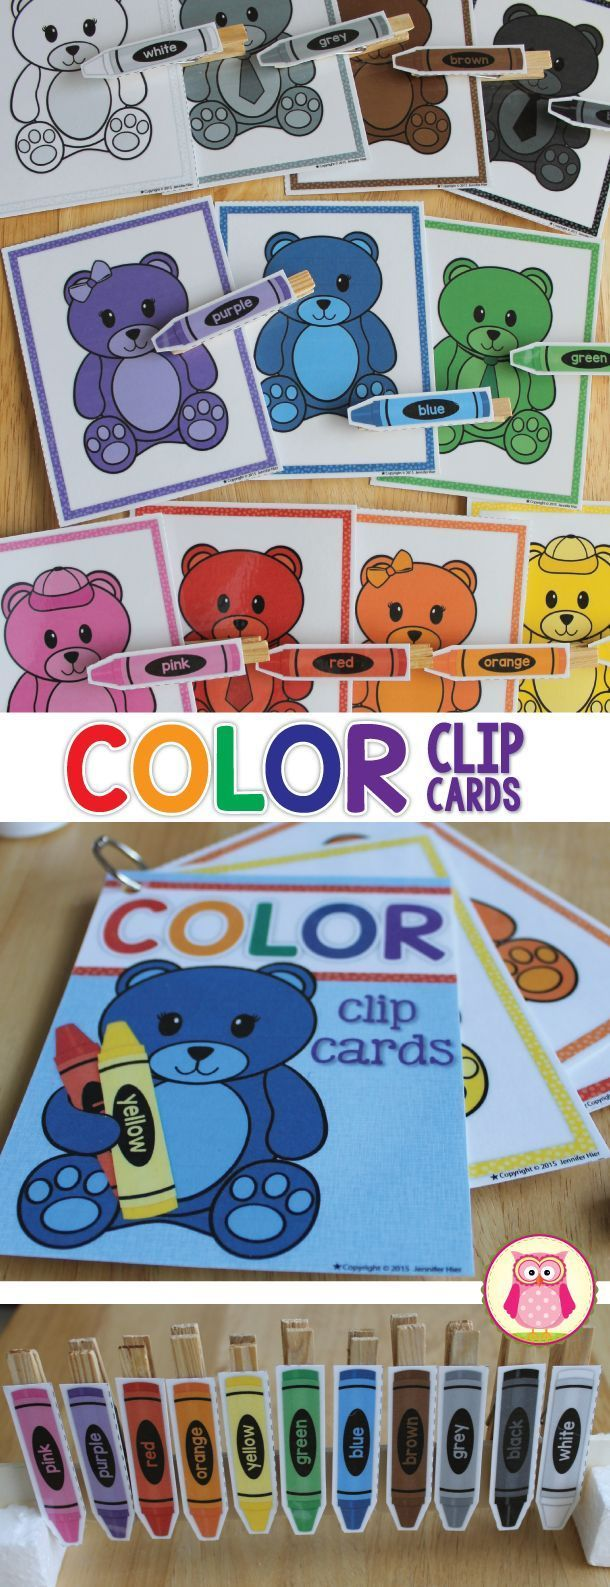 fine motor practice and color matching activity for your bear themed preschool or pre-k unit. Attach crayon printable to a clothespin clip. https://www.teacherspayteachers.com/Product/Color-Matching-Bears-Bear-Color-Match-Clip-Cards-for-Preschool-and-ECE-2032614